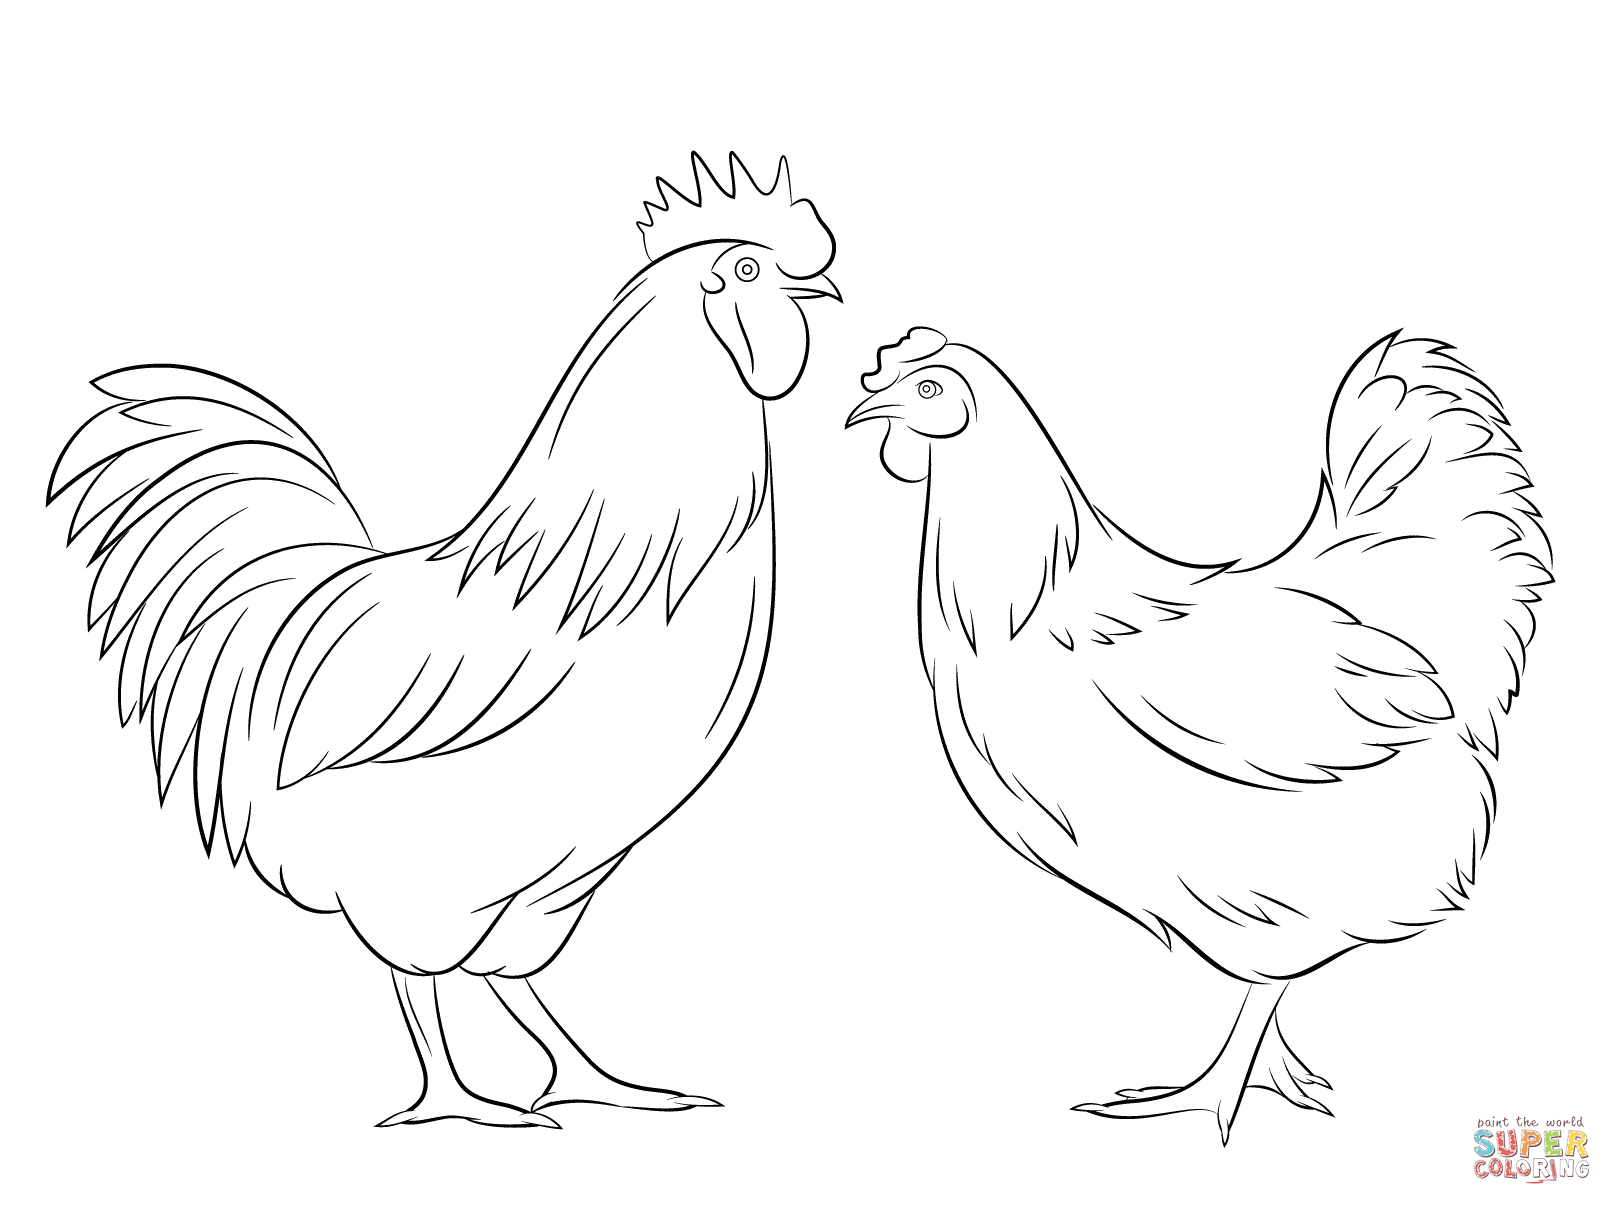 hen drawings outline Google Search rooster hen Pinterest